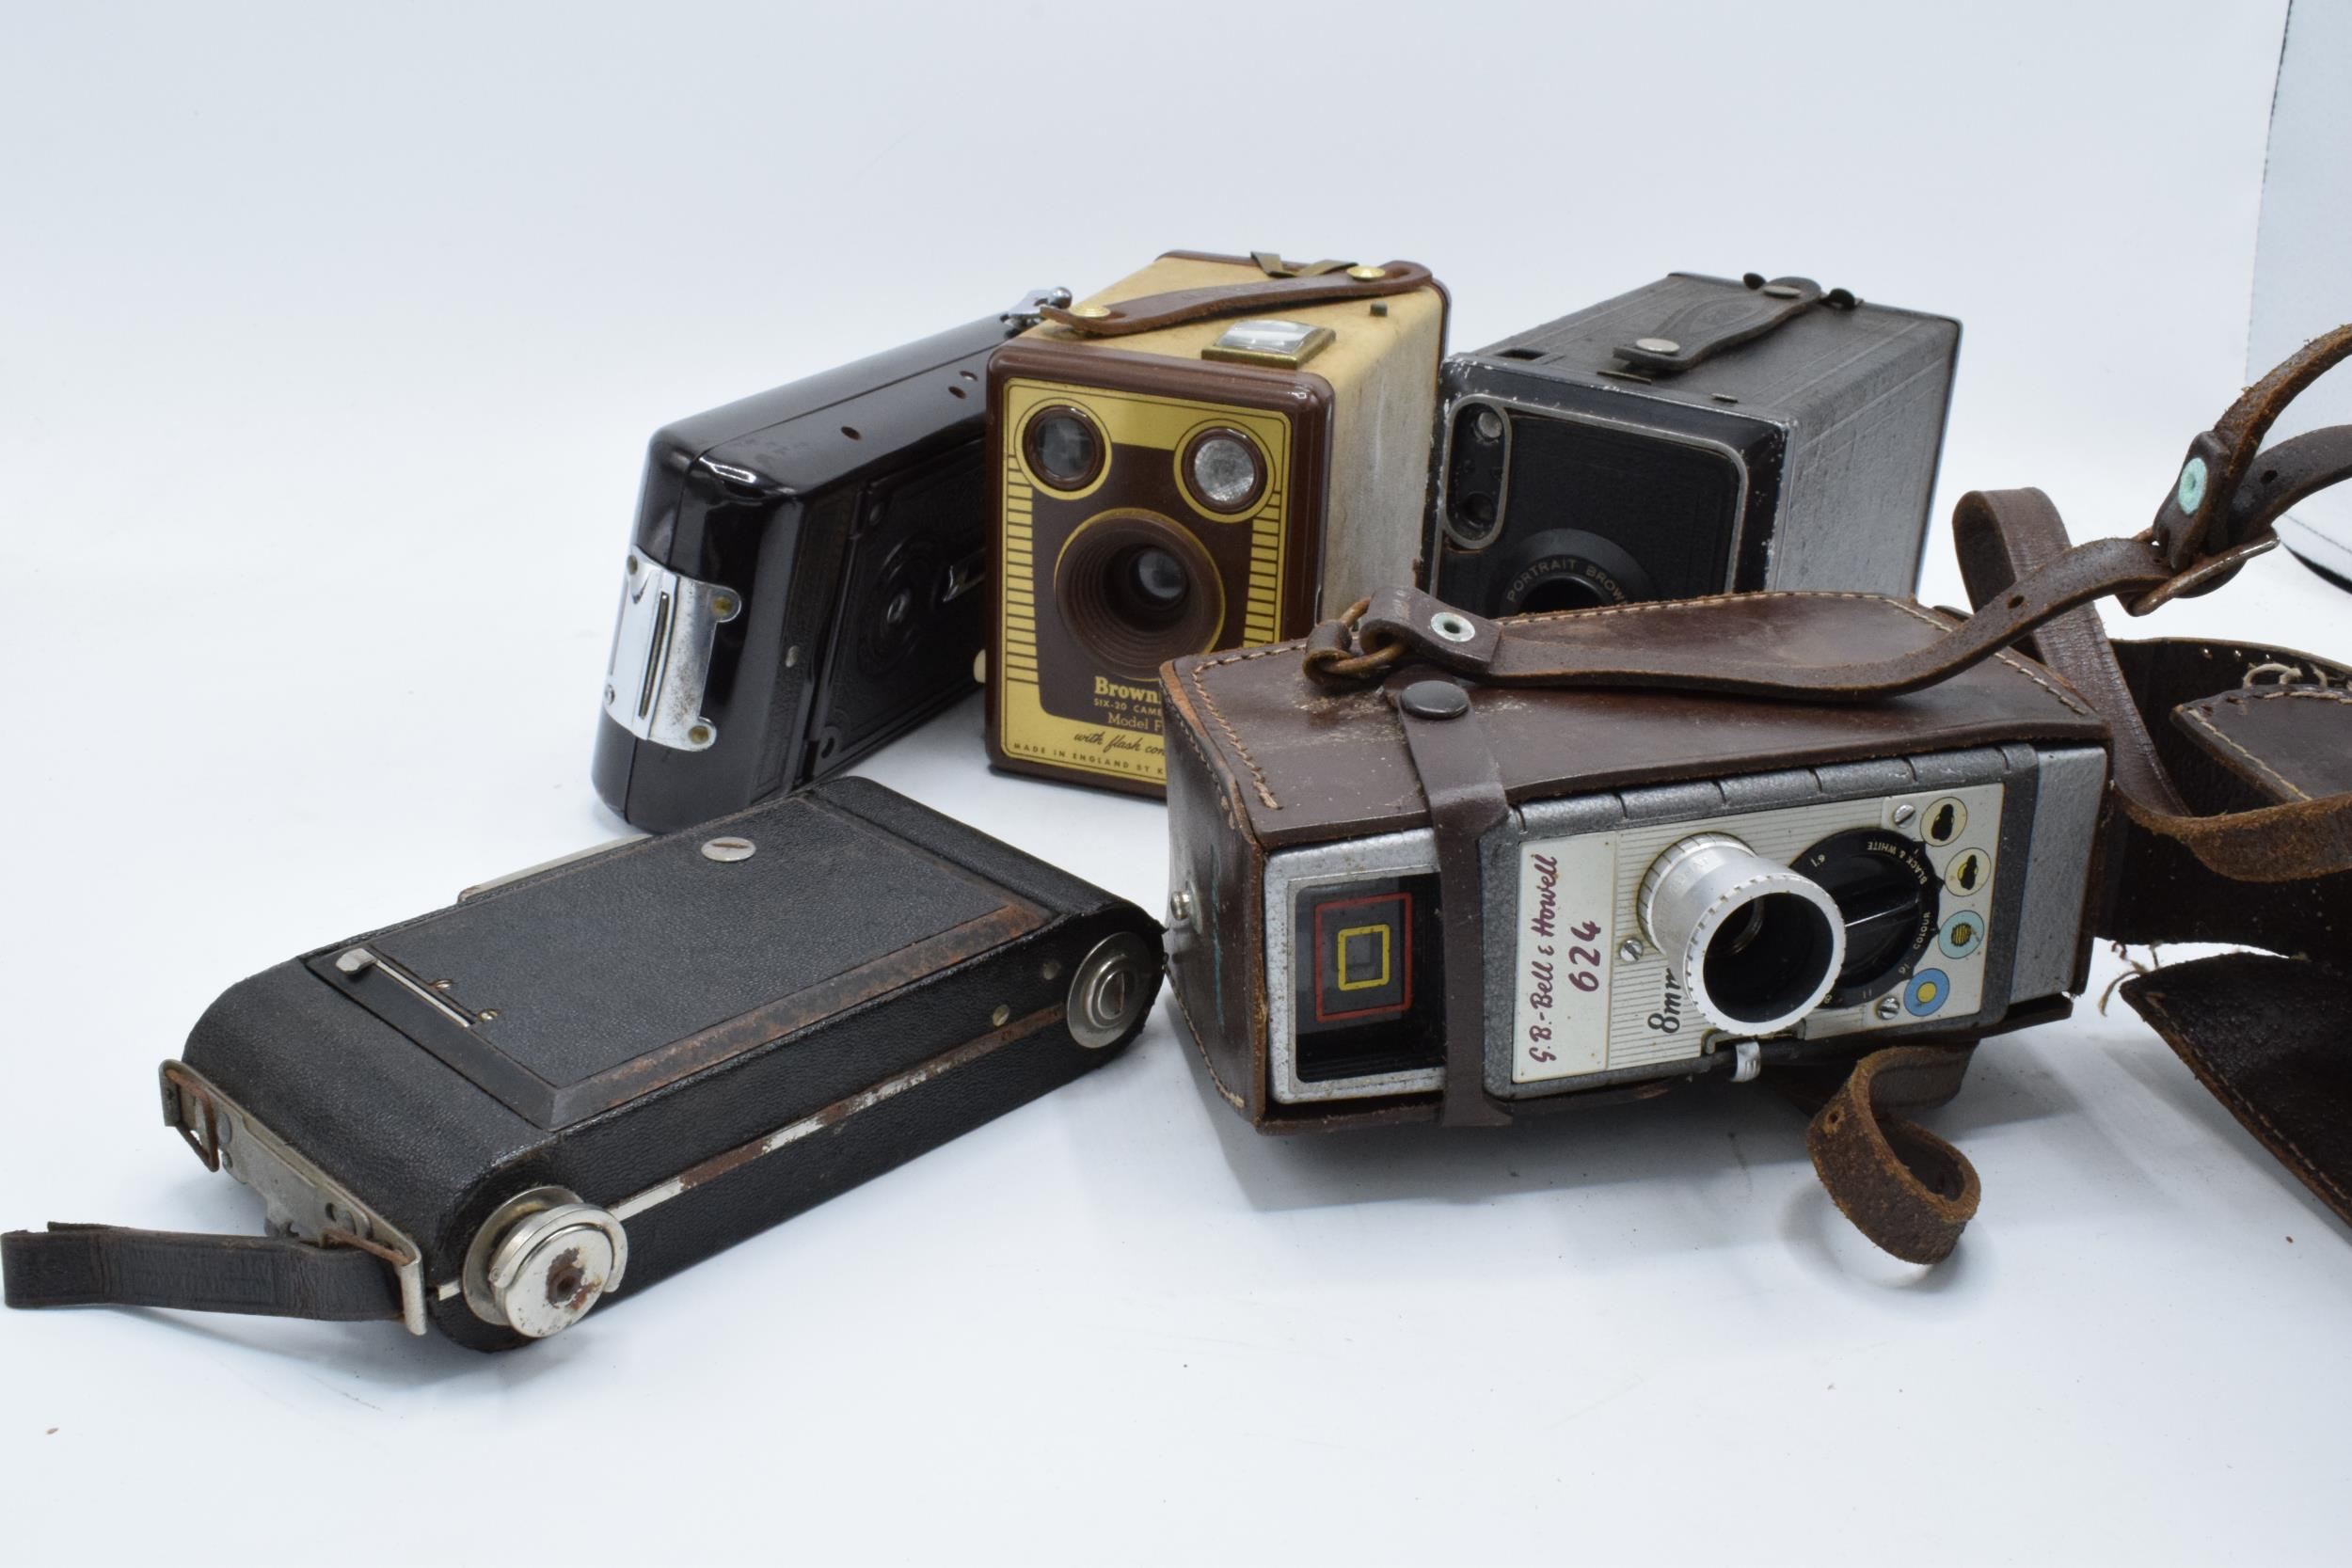 A collection of vintage cameras in carry cases to include a Brownie Six-20 Model F, Kodak Brownie